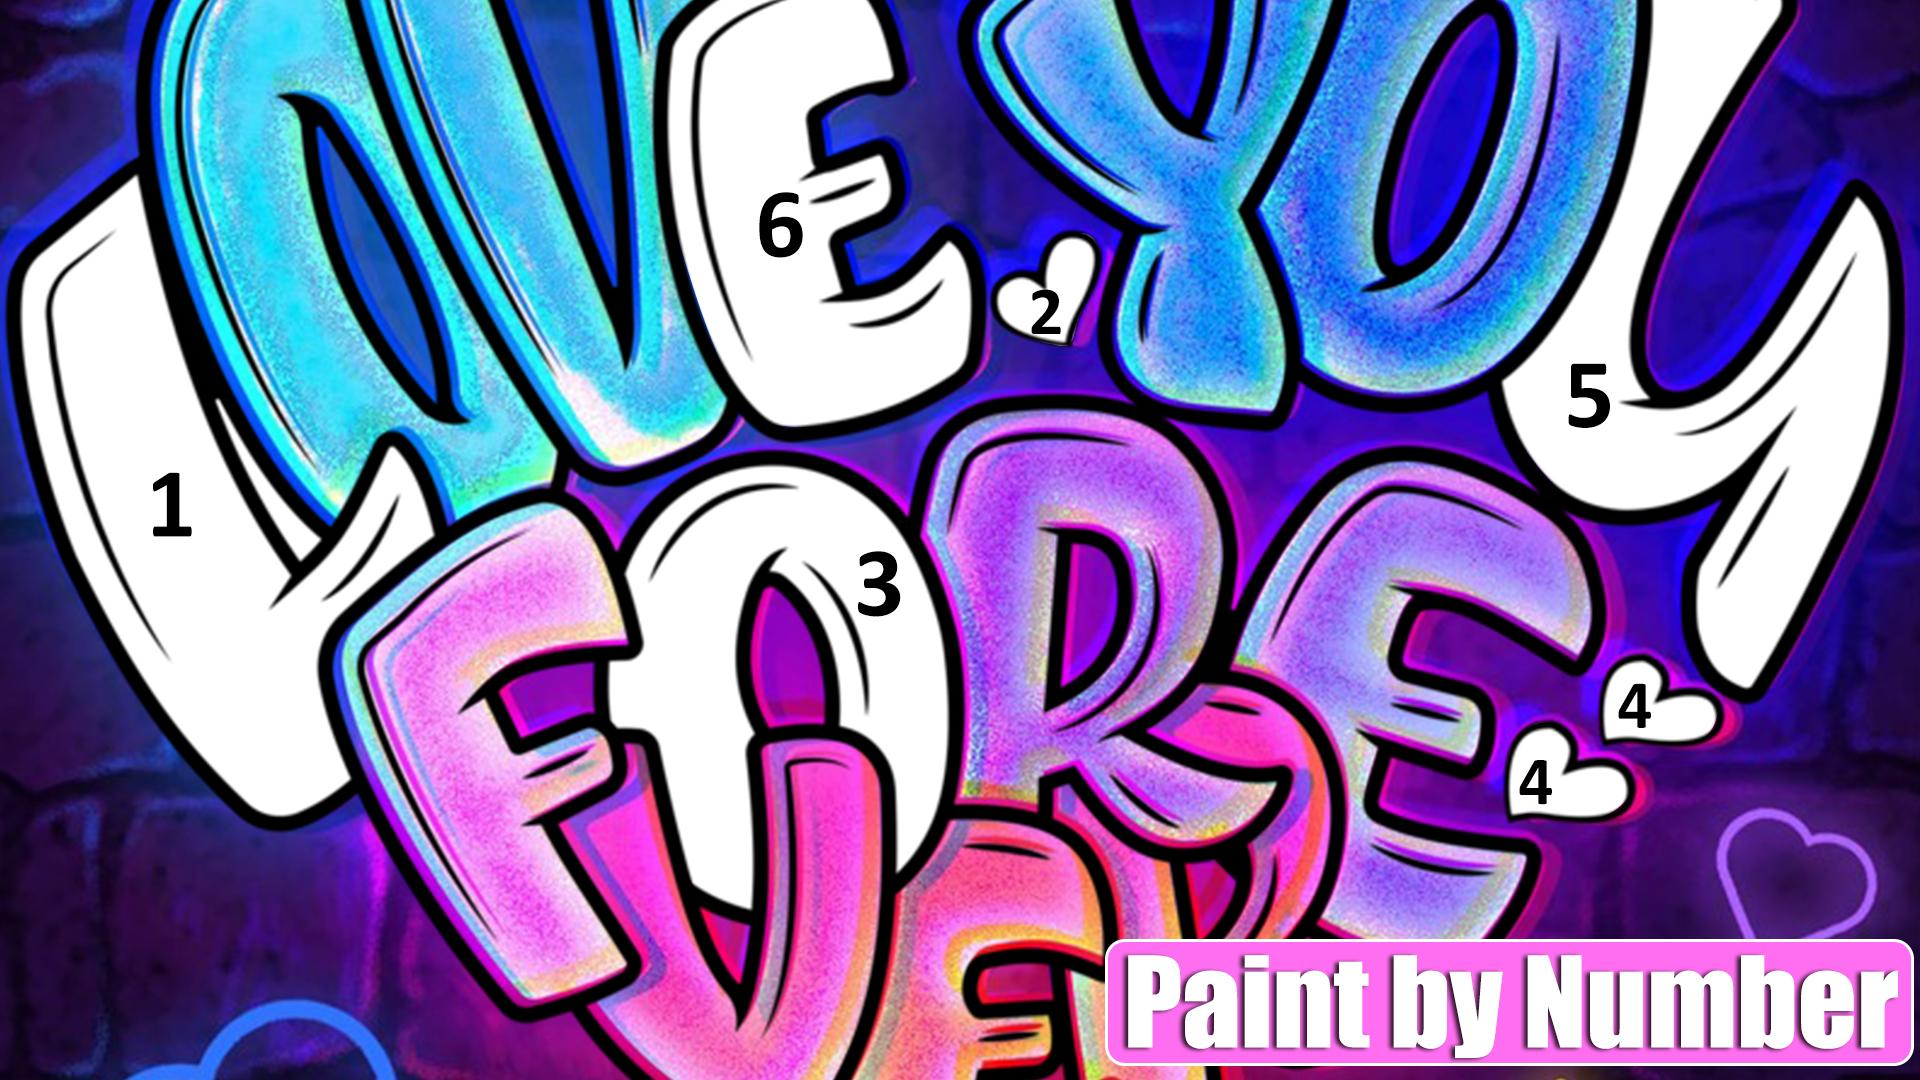 Paint By Number Free Coloring Book & Puzzle Game 2.36.2 Screenshot 8